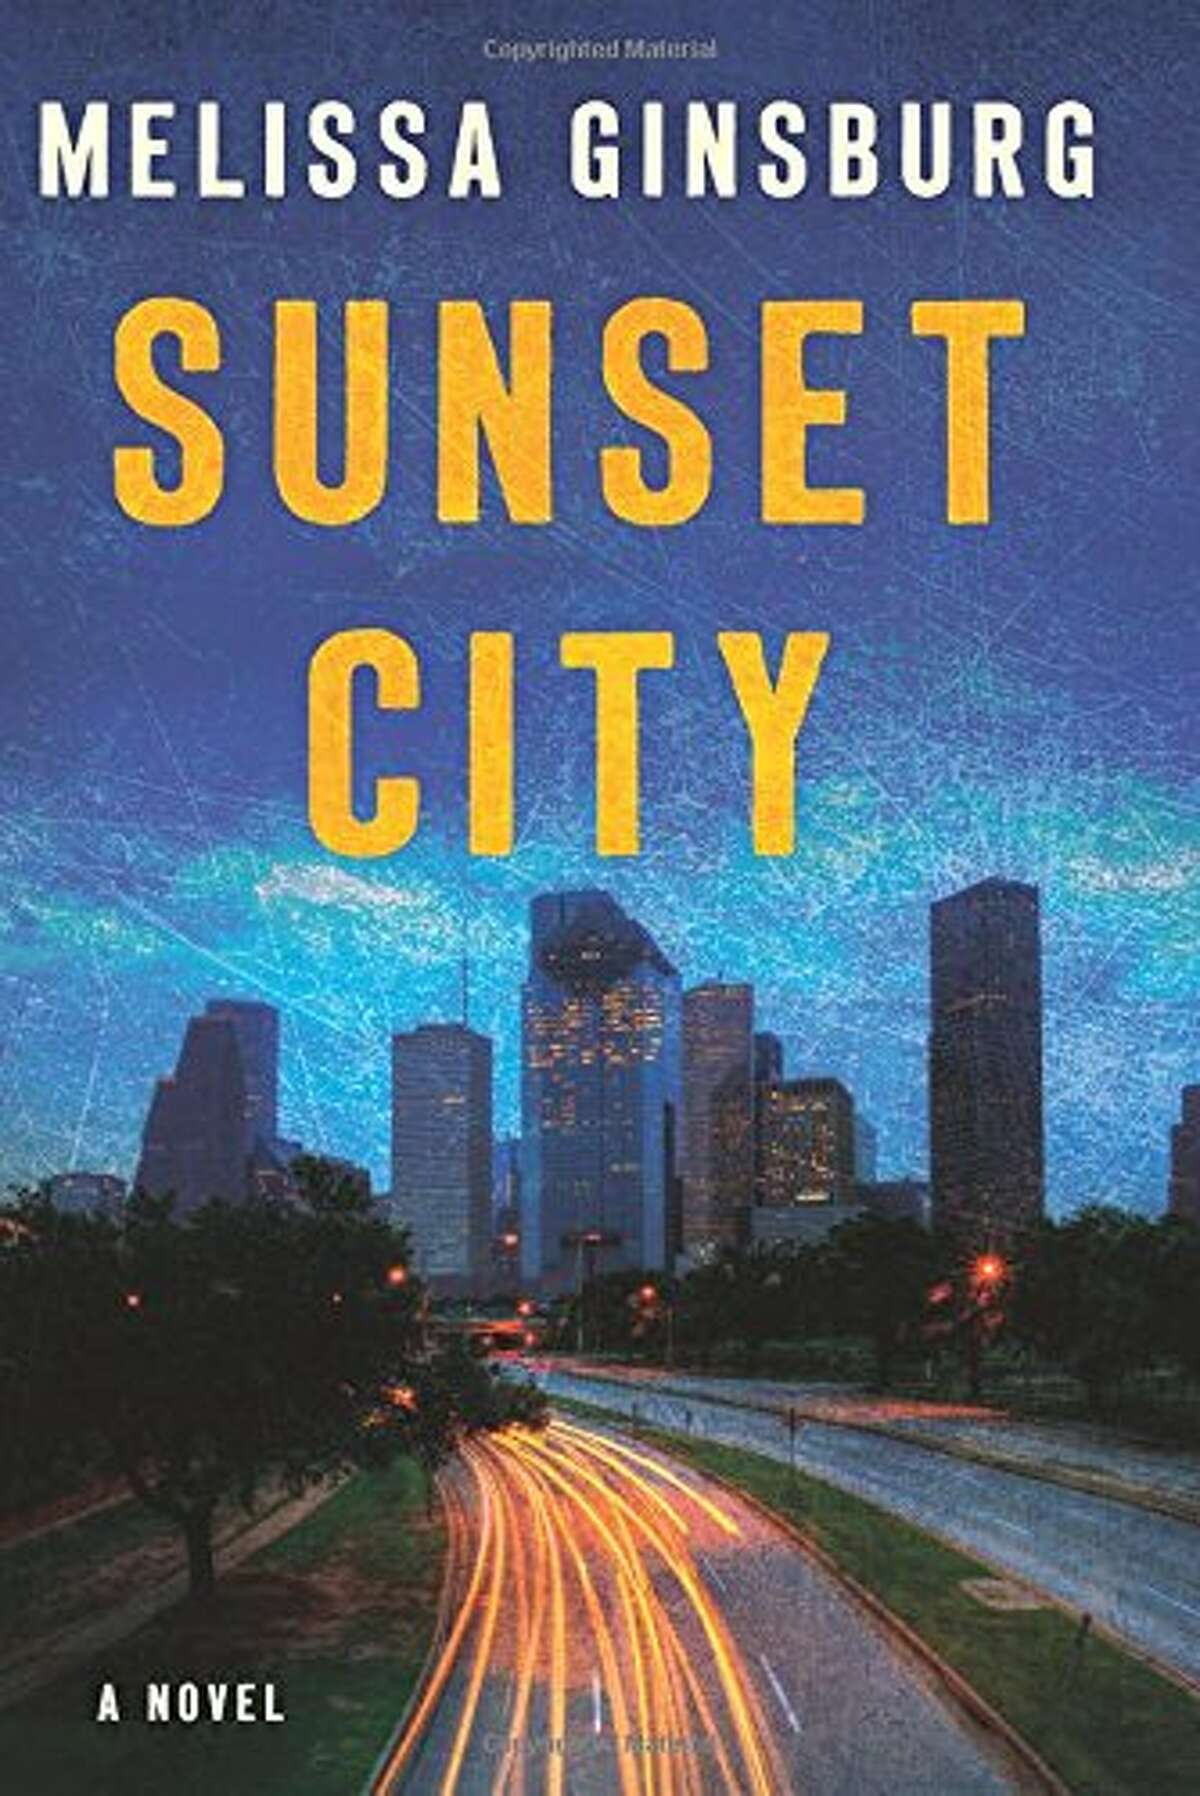 Sunset City By Melissa Ginsburg Ecco, 208 pp., $25.99 Houston is practically a character in this noir novel, in which a young woman seeks the killer of her childhood friend. The action moves all over town, from River Oaks to the House of Pies to a traffic jam on I-45.